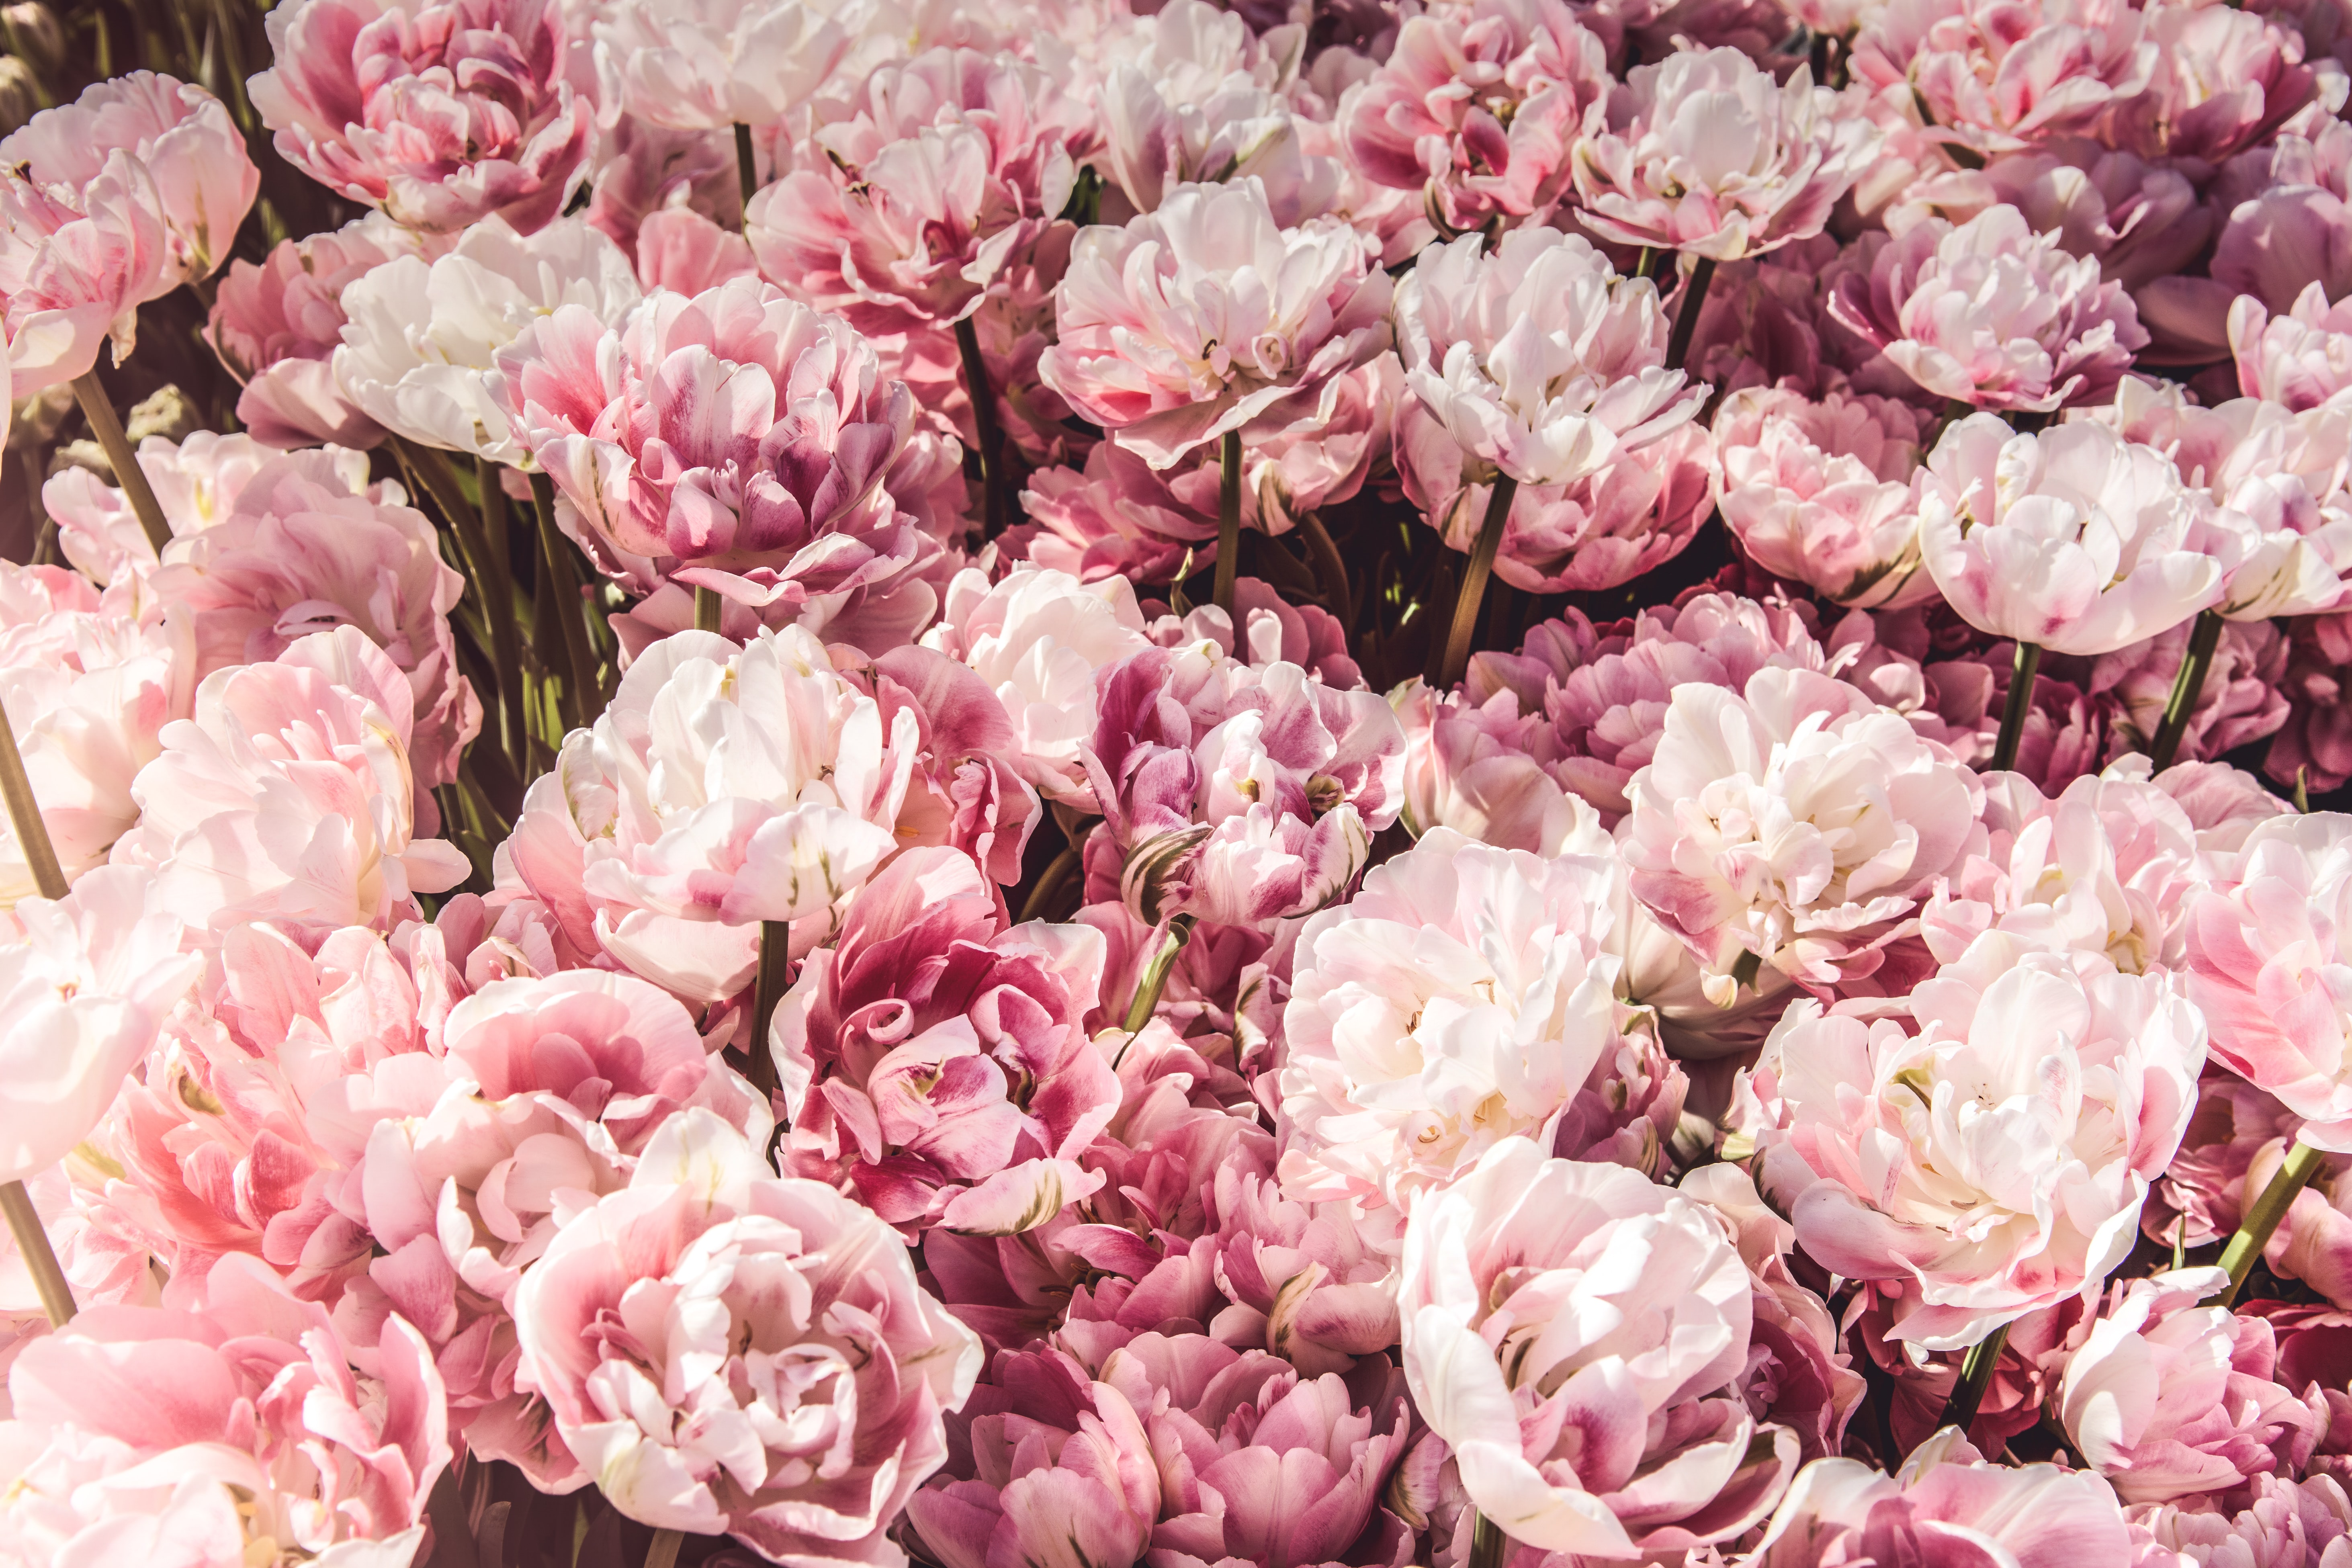 An overhead shot of a large bed of pink peonies